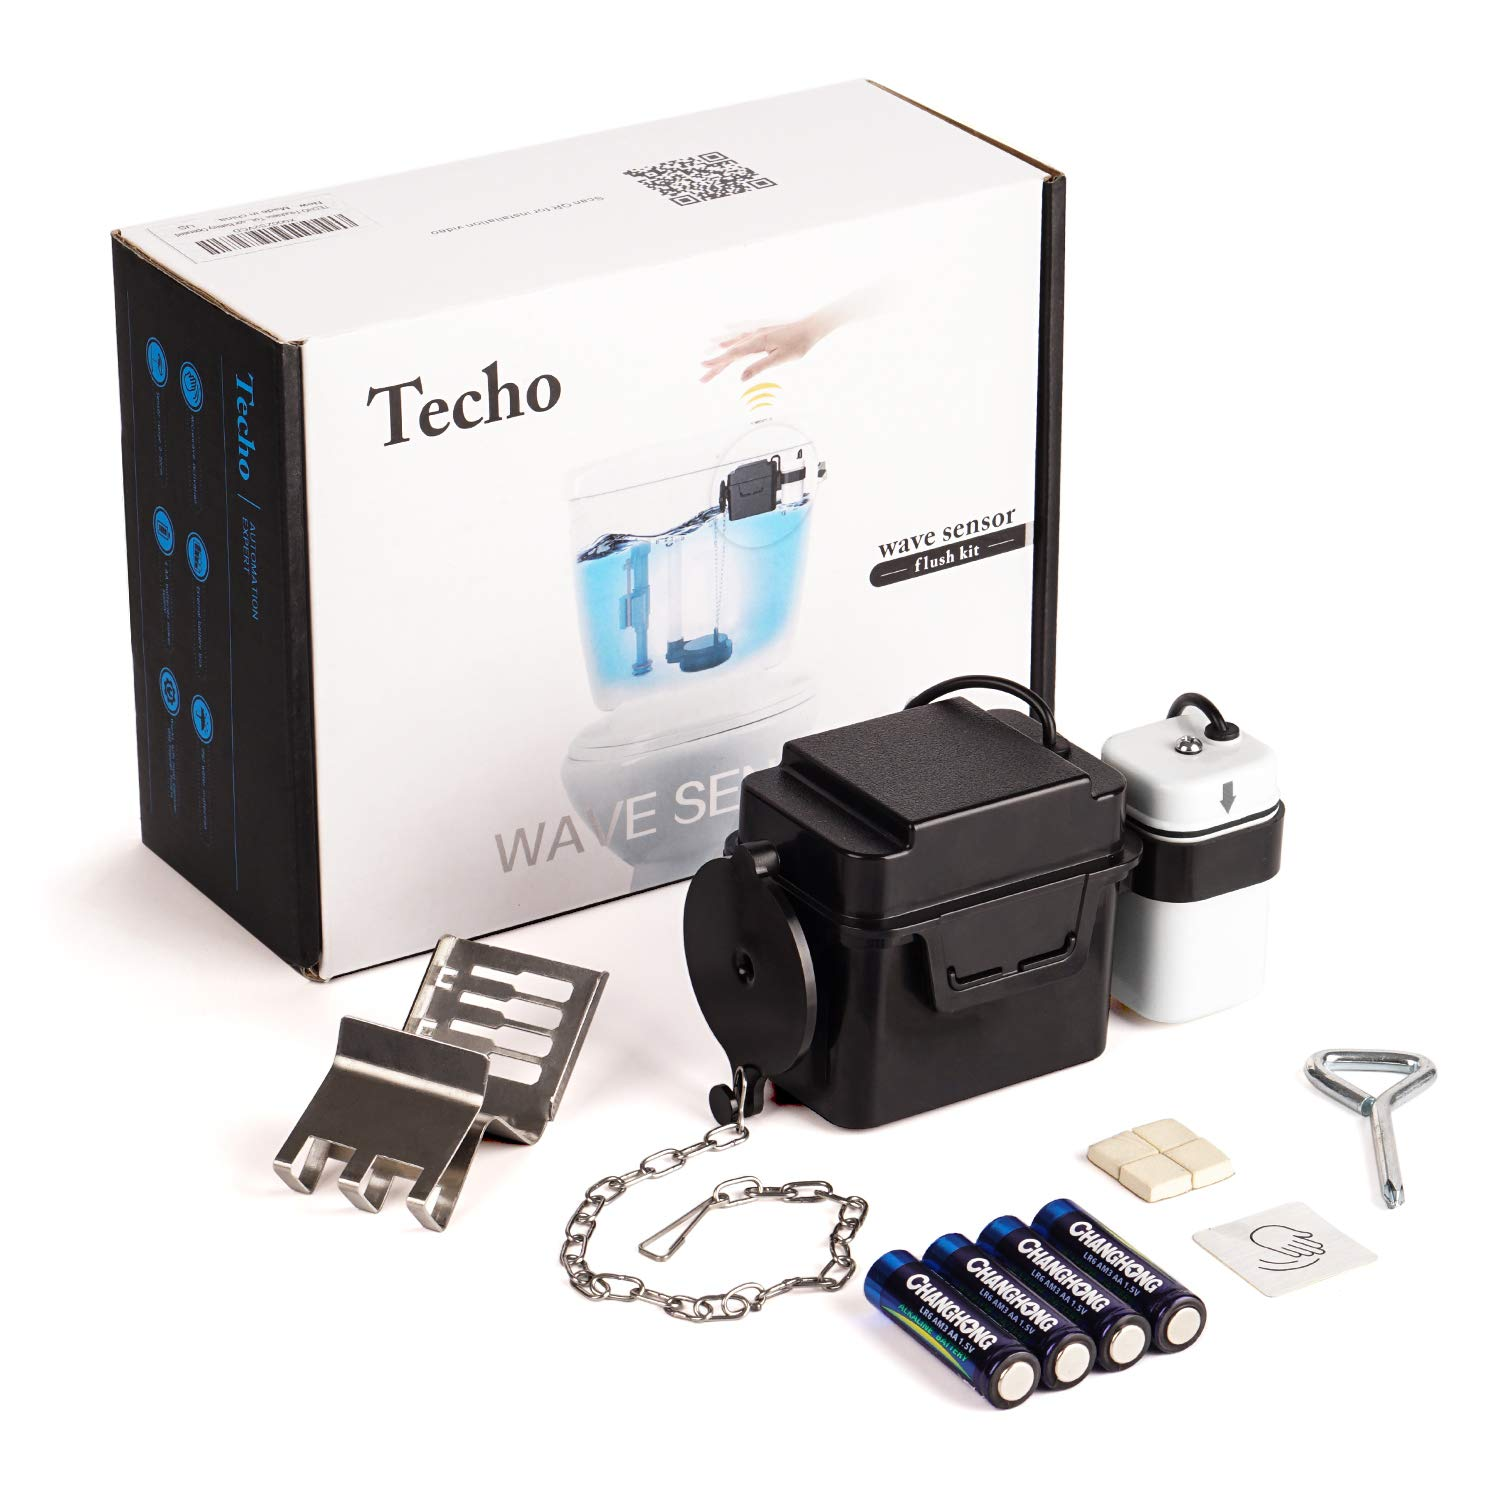 Techo Touchless Toilet Flush Kit with 8'' Sensor Range, Adjustable Sensor Range and Flush Time, Automatic Motion Sensor Toilet Flush Kit Powered by Batteries by TECHO